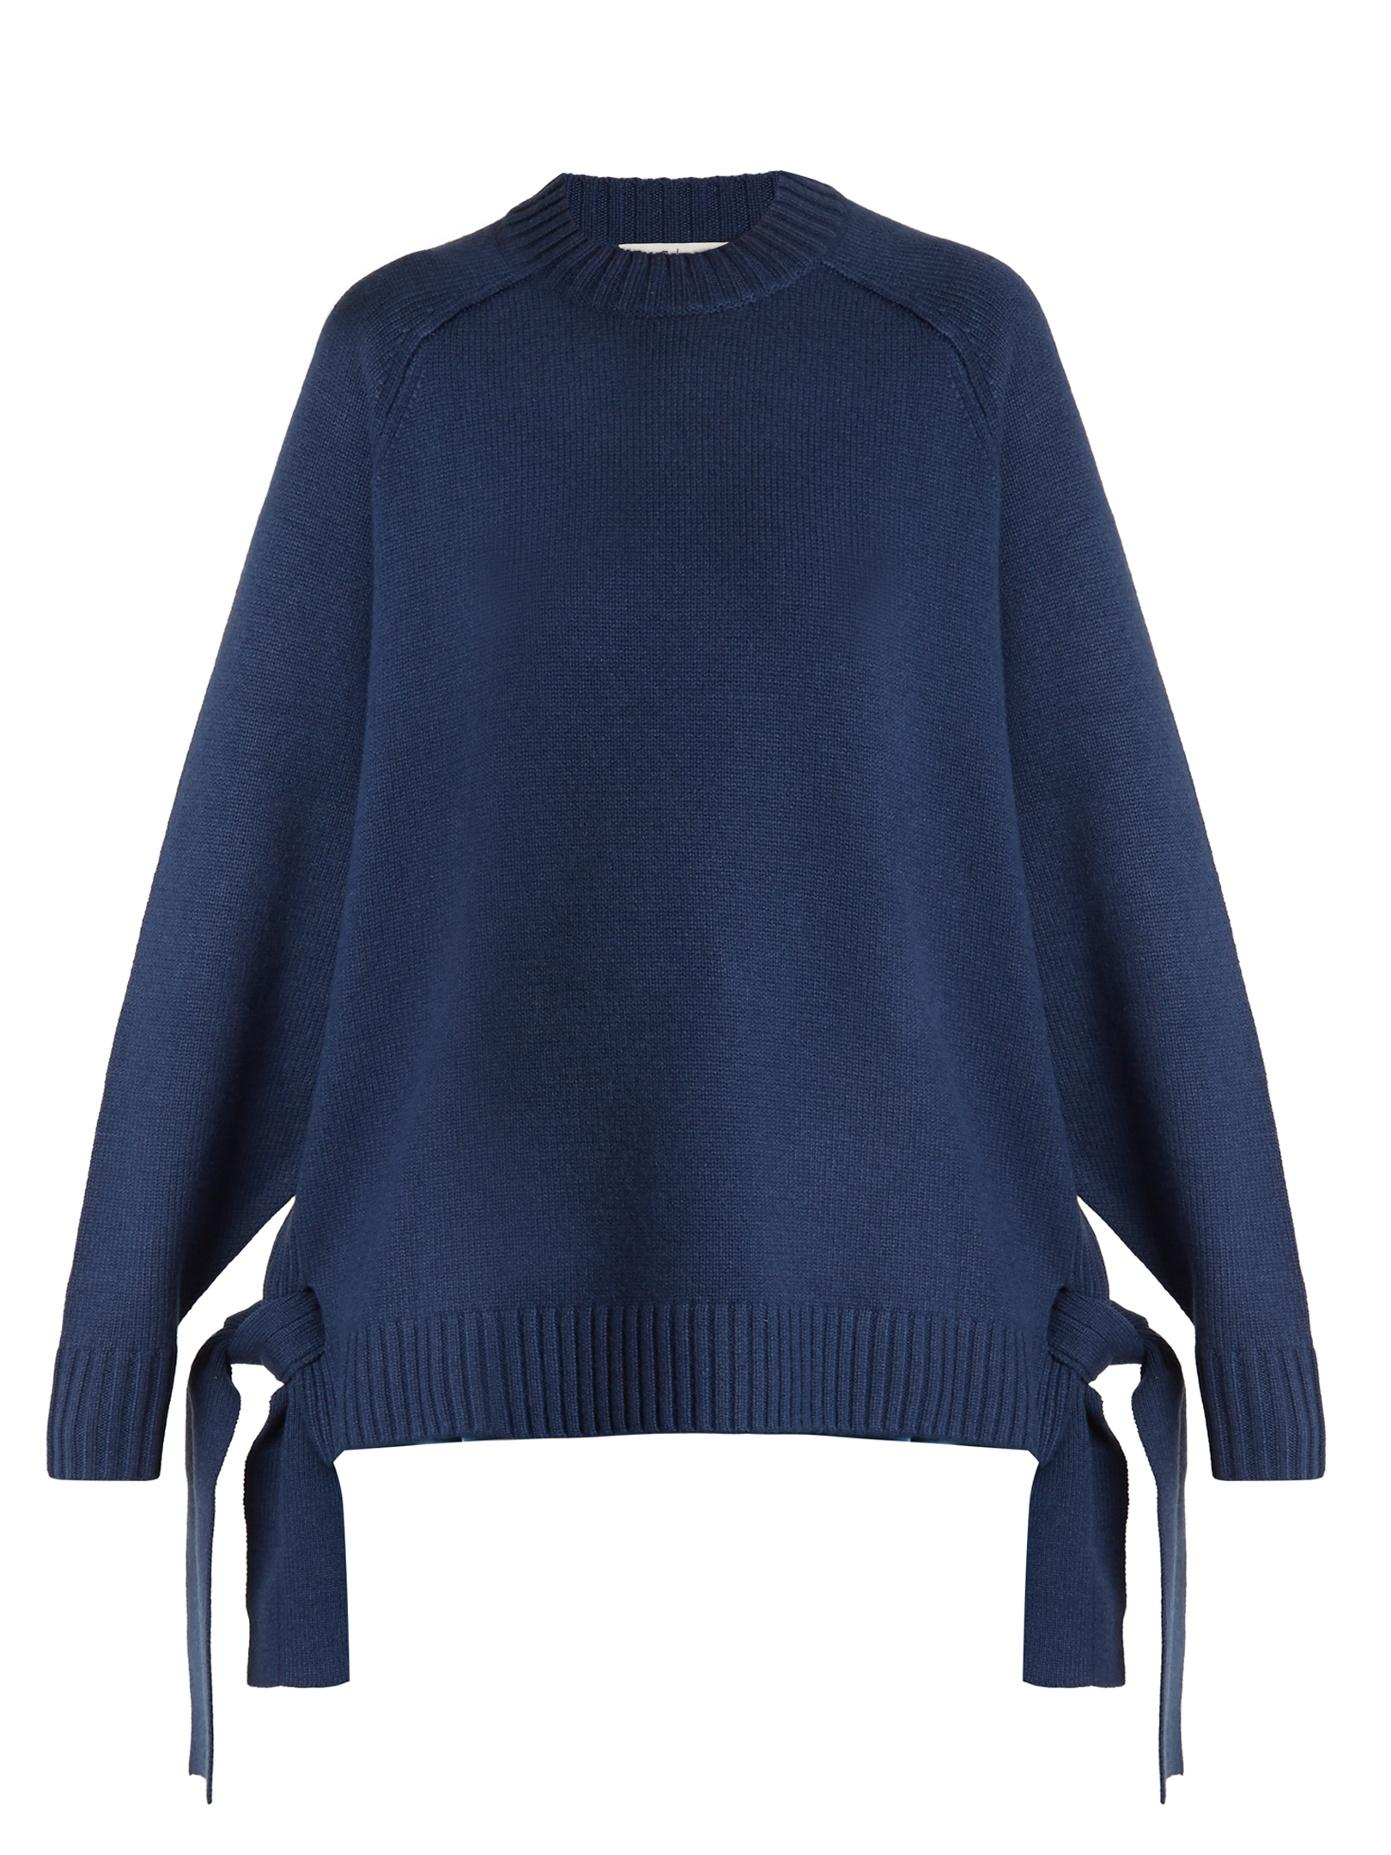 Tibi Side-Tie Cashmere Sweater In Blue